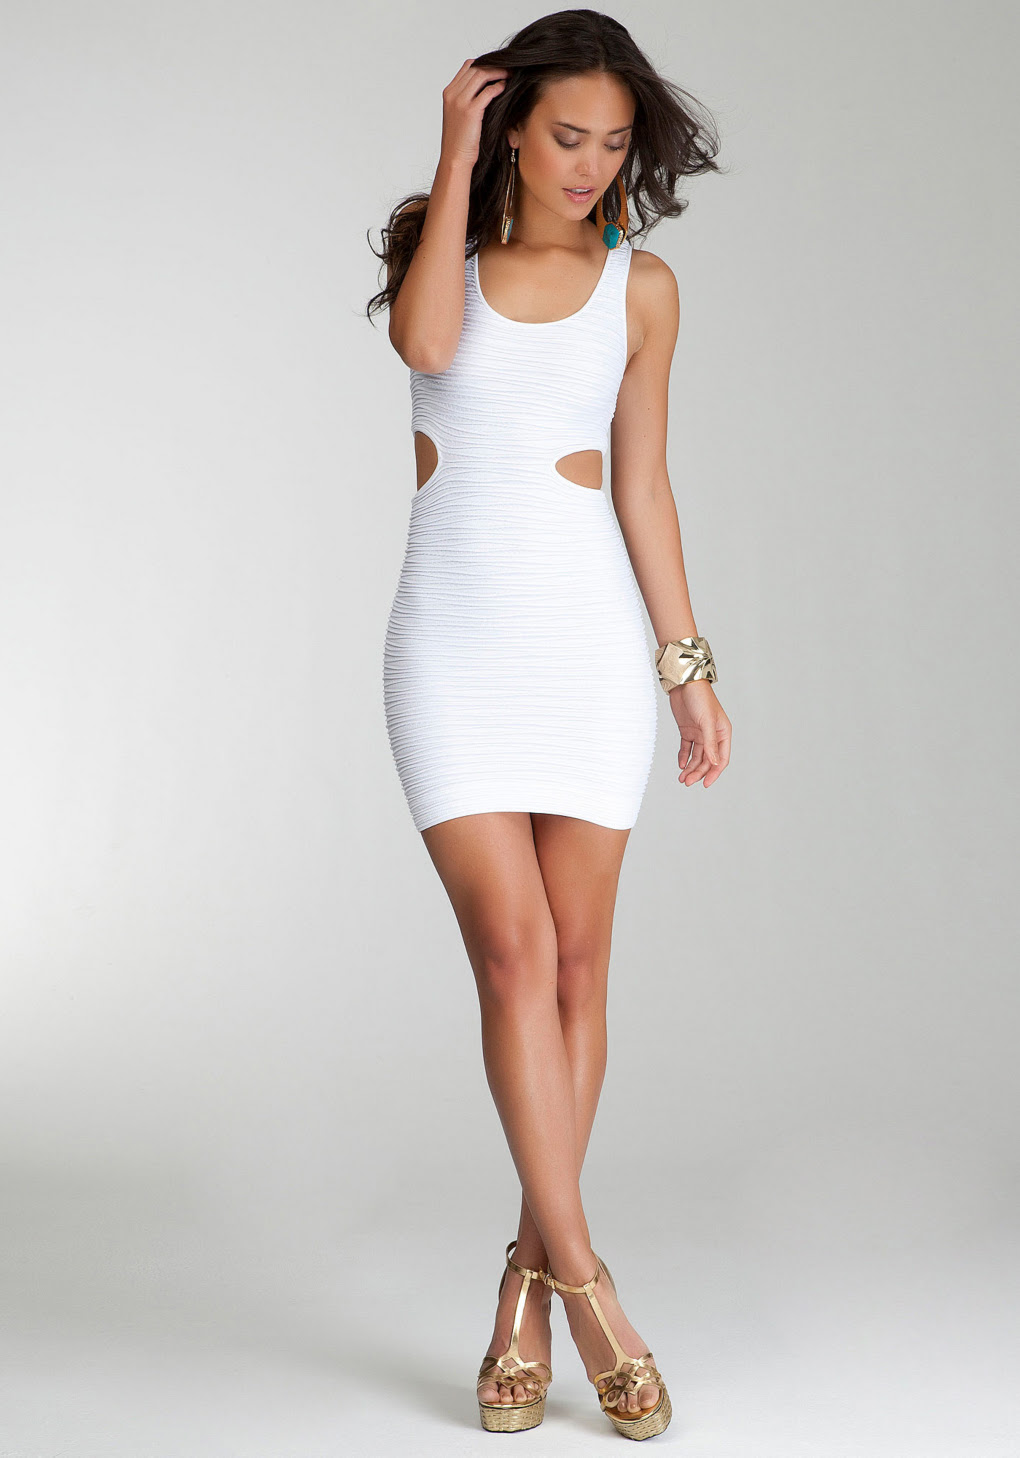 Cutout dress sides white bodycon with near